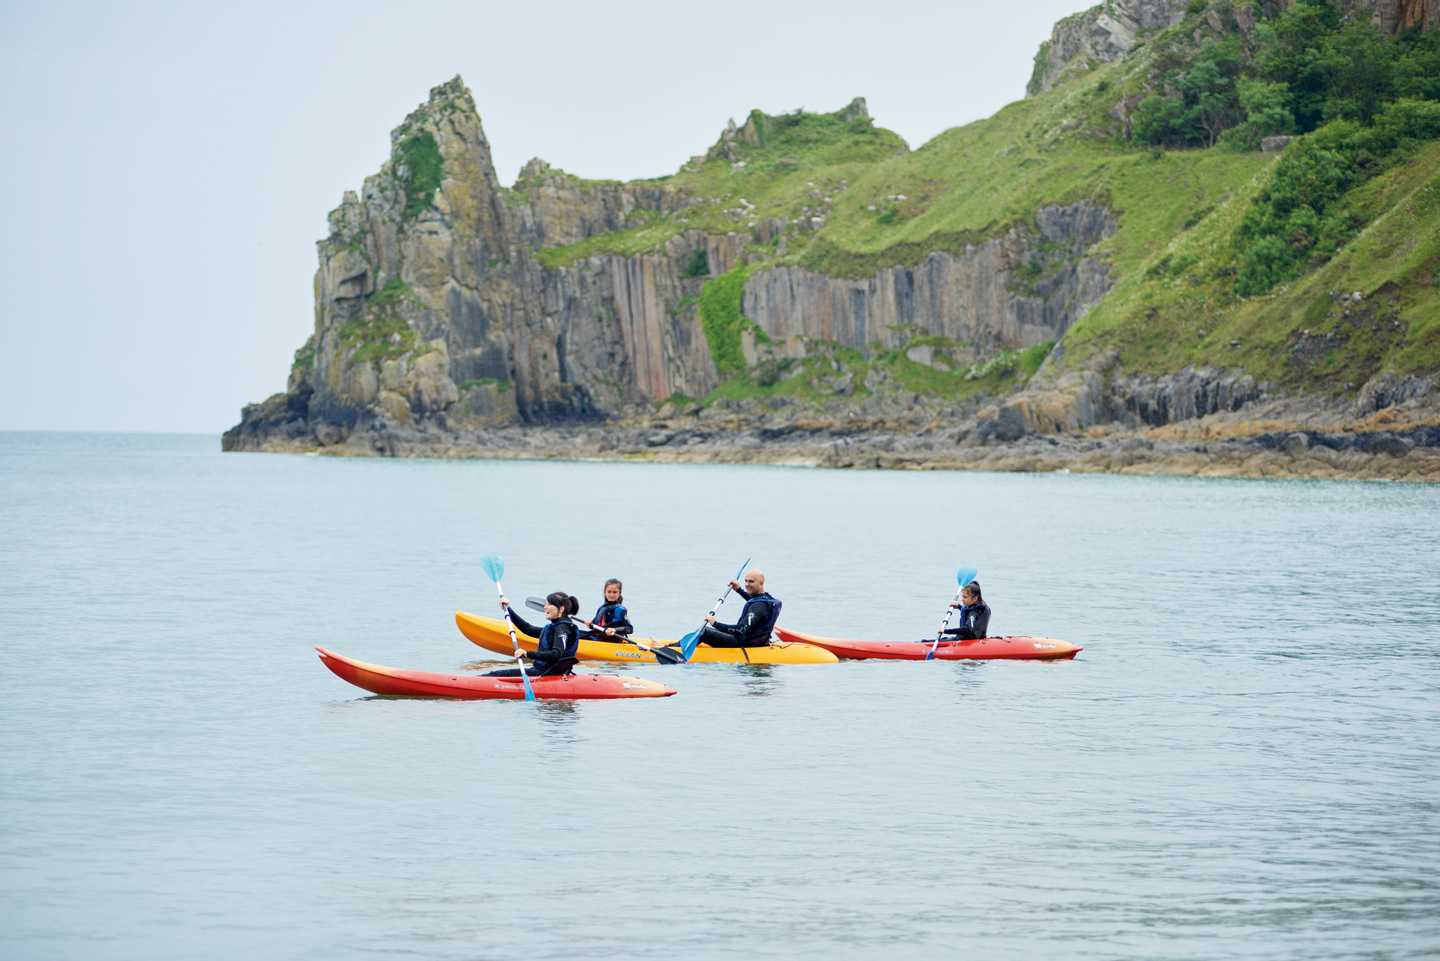 Guests kayaking in the sea